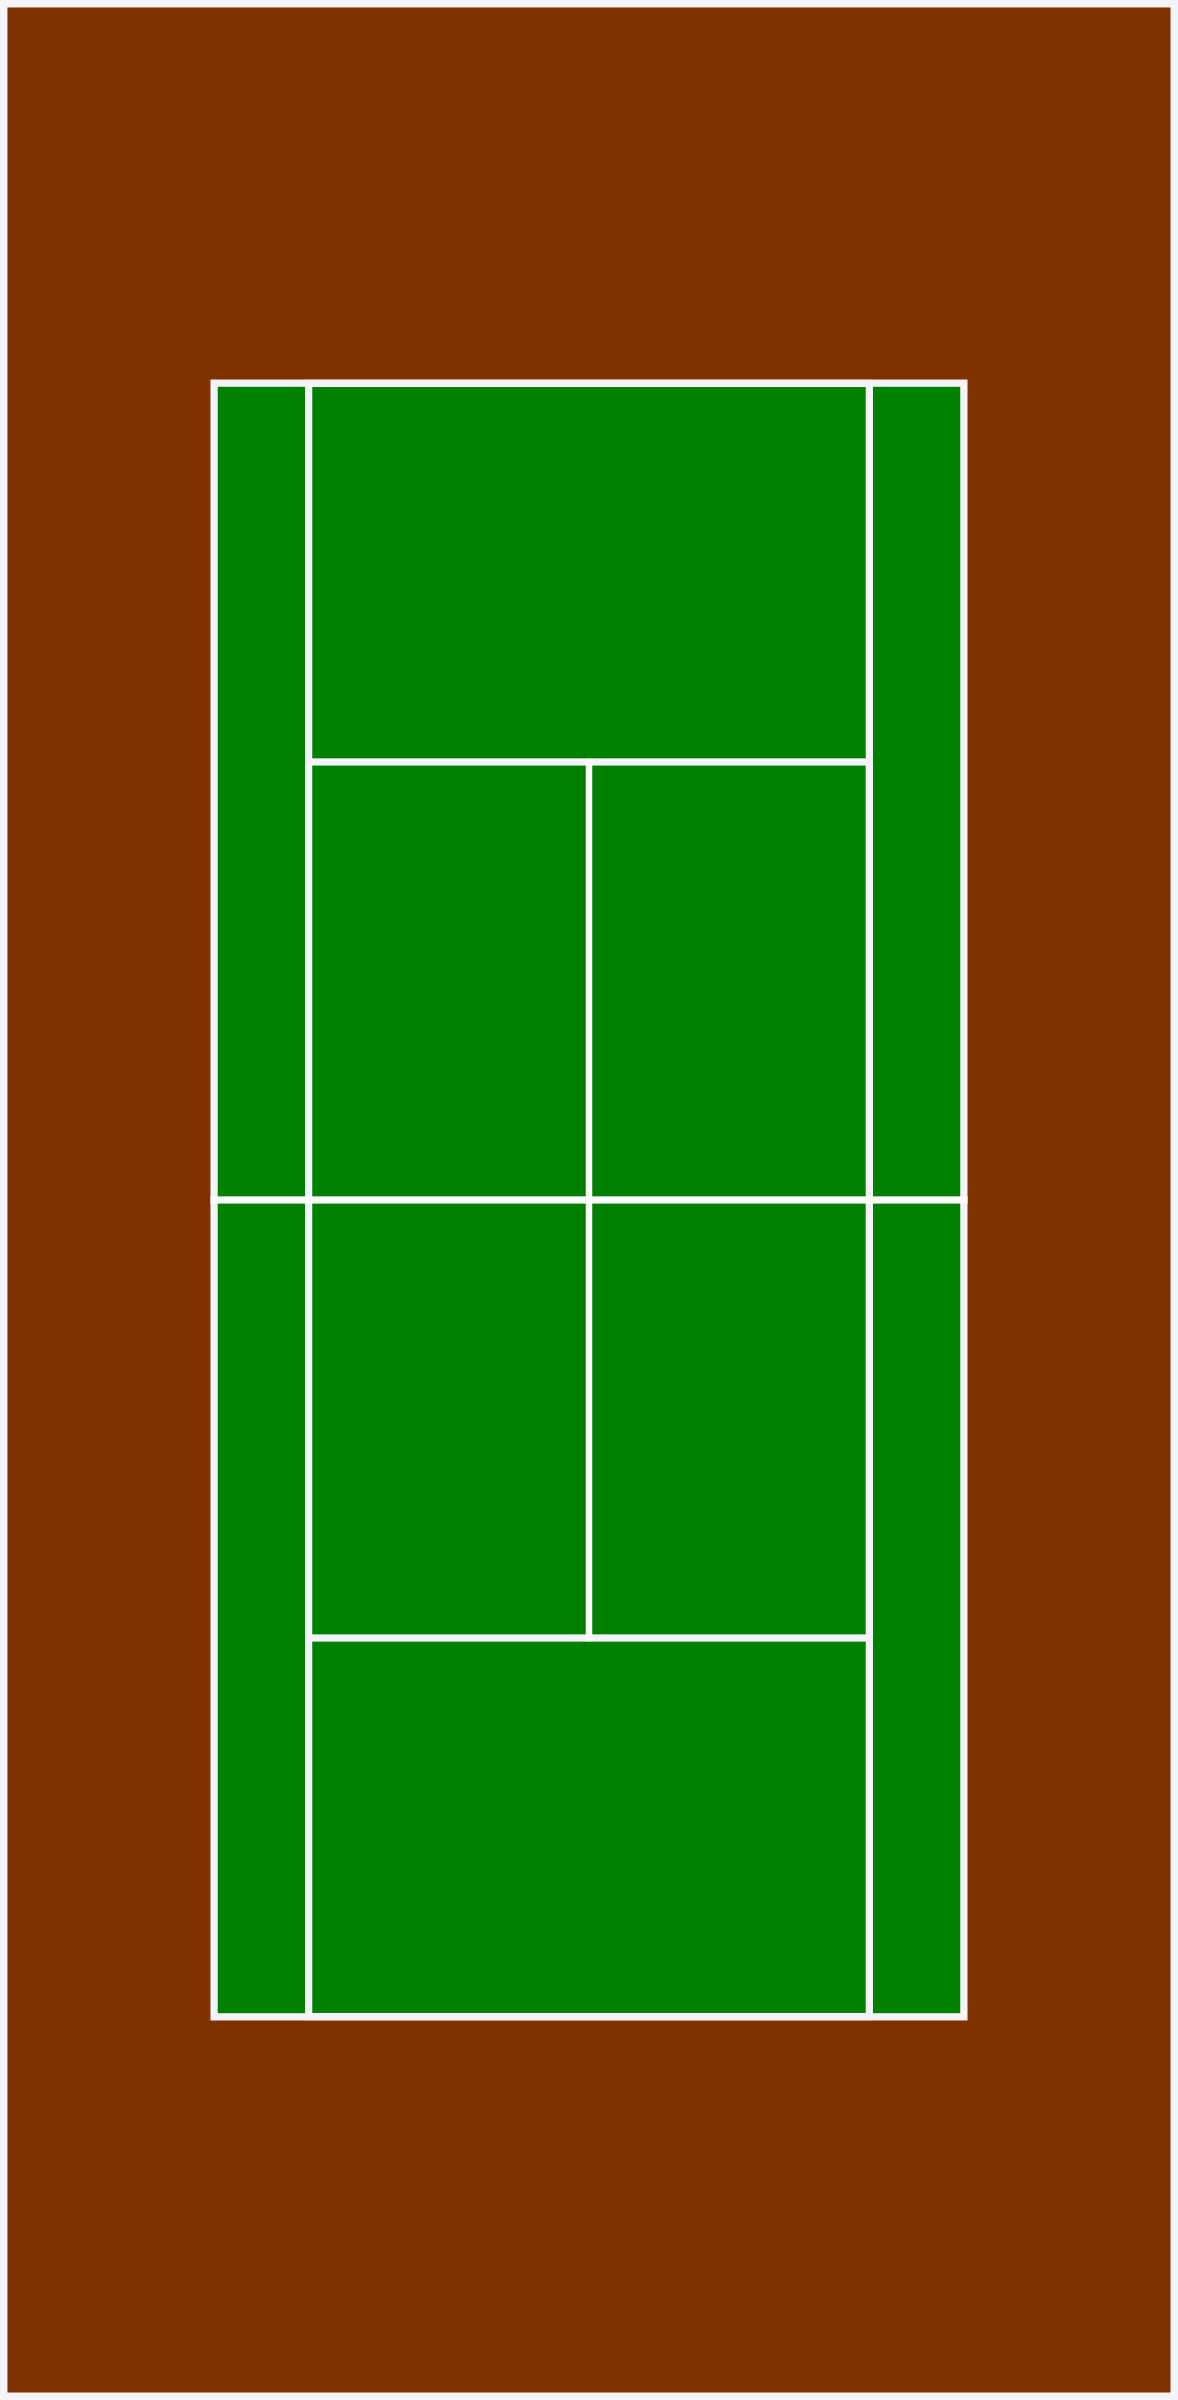 Tennis court png » PNG Image.